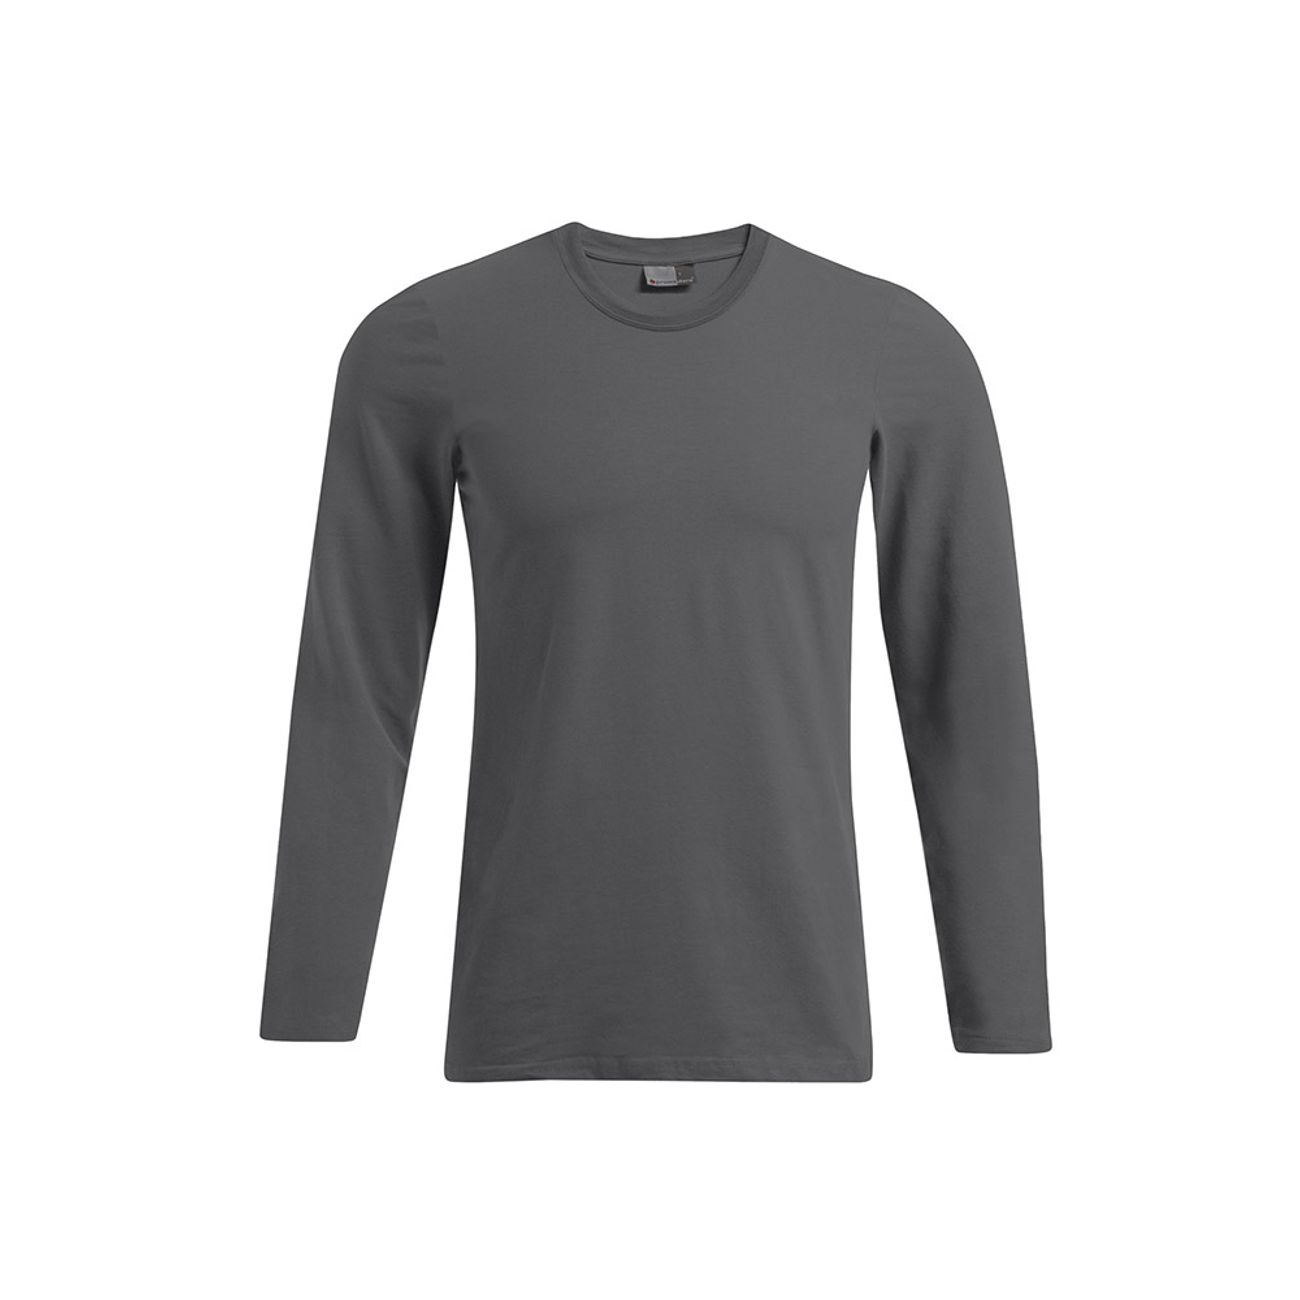 Taille T ModeLifestyle Ml Grande shirt Promodoro Slim Homme Fit odxrCeBW